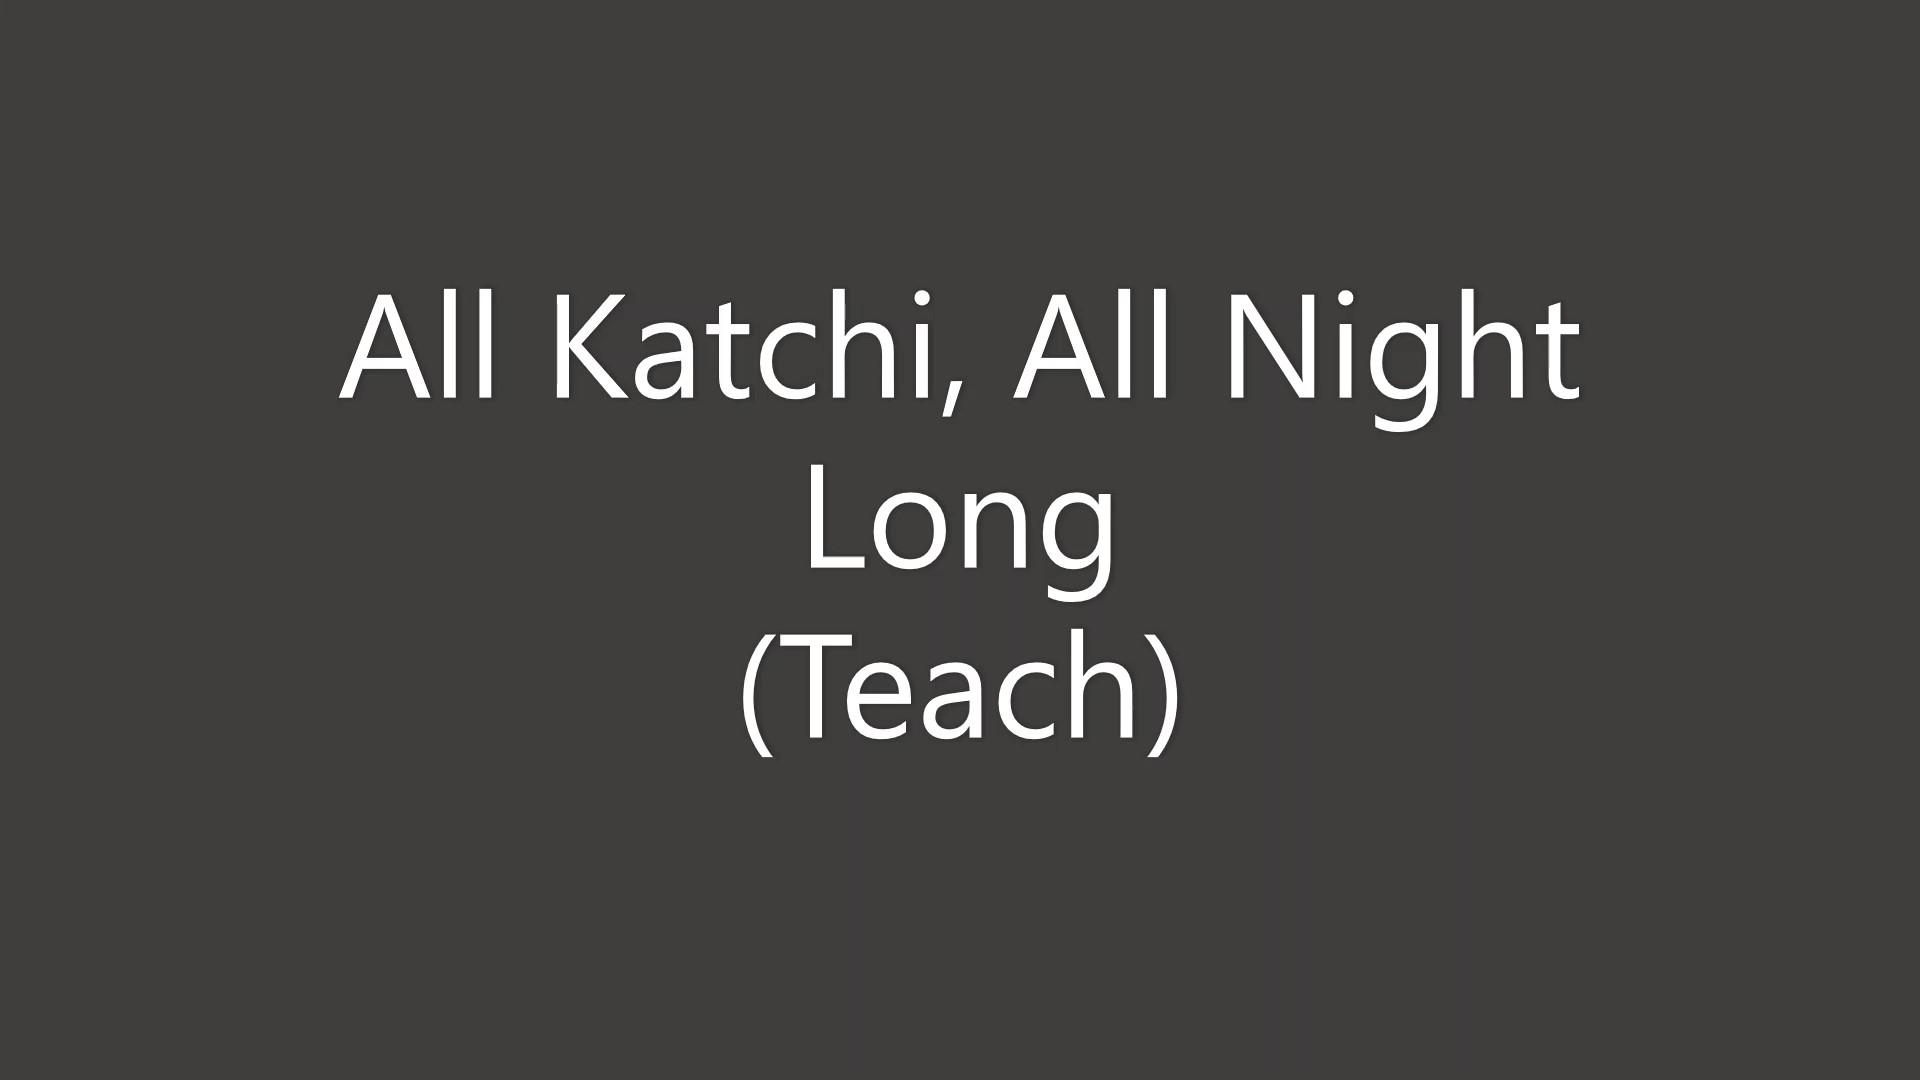 All Katchi, All Night Long Teach